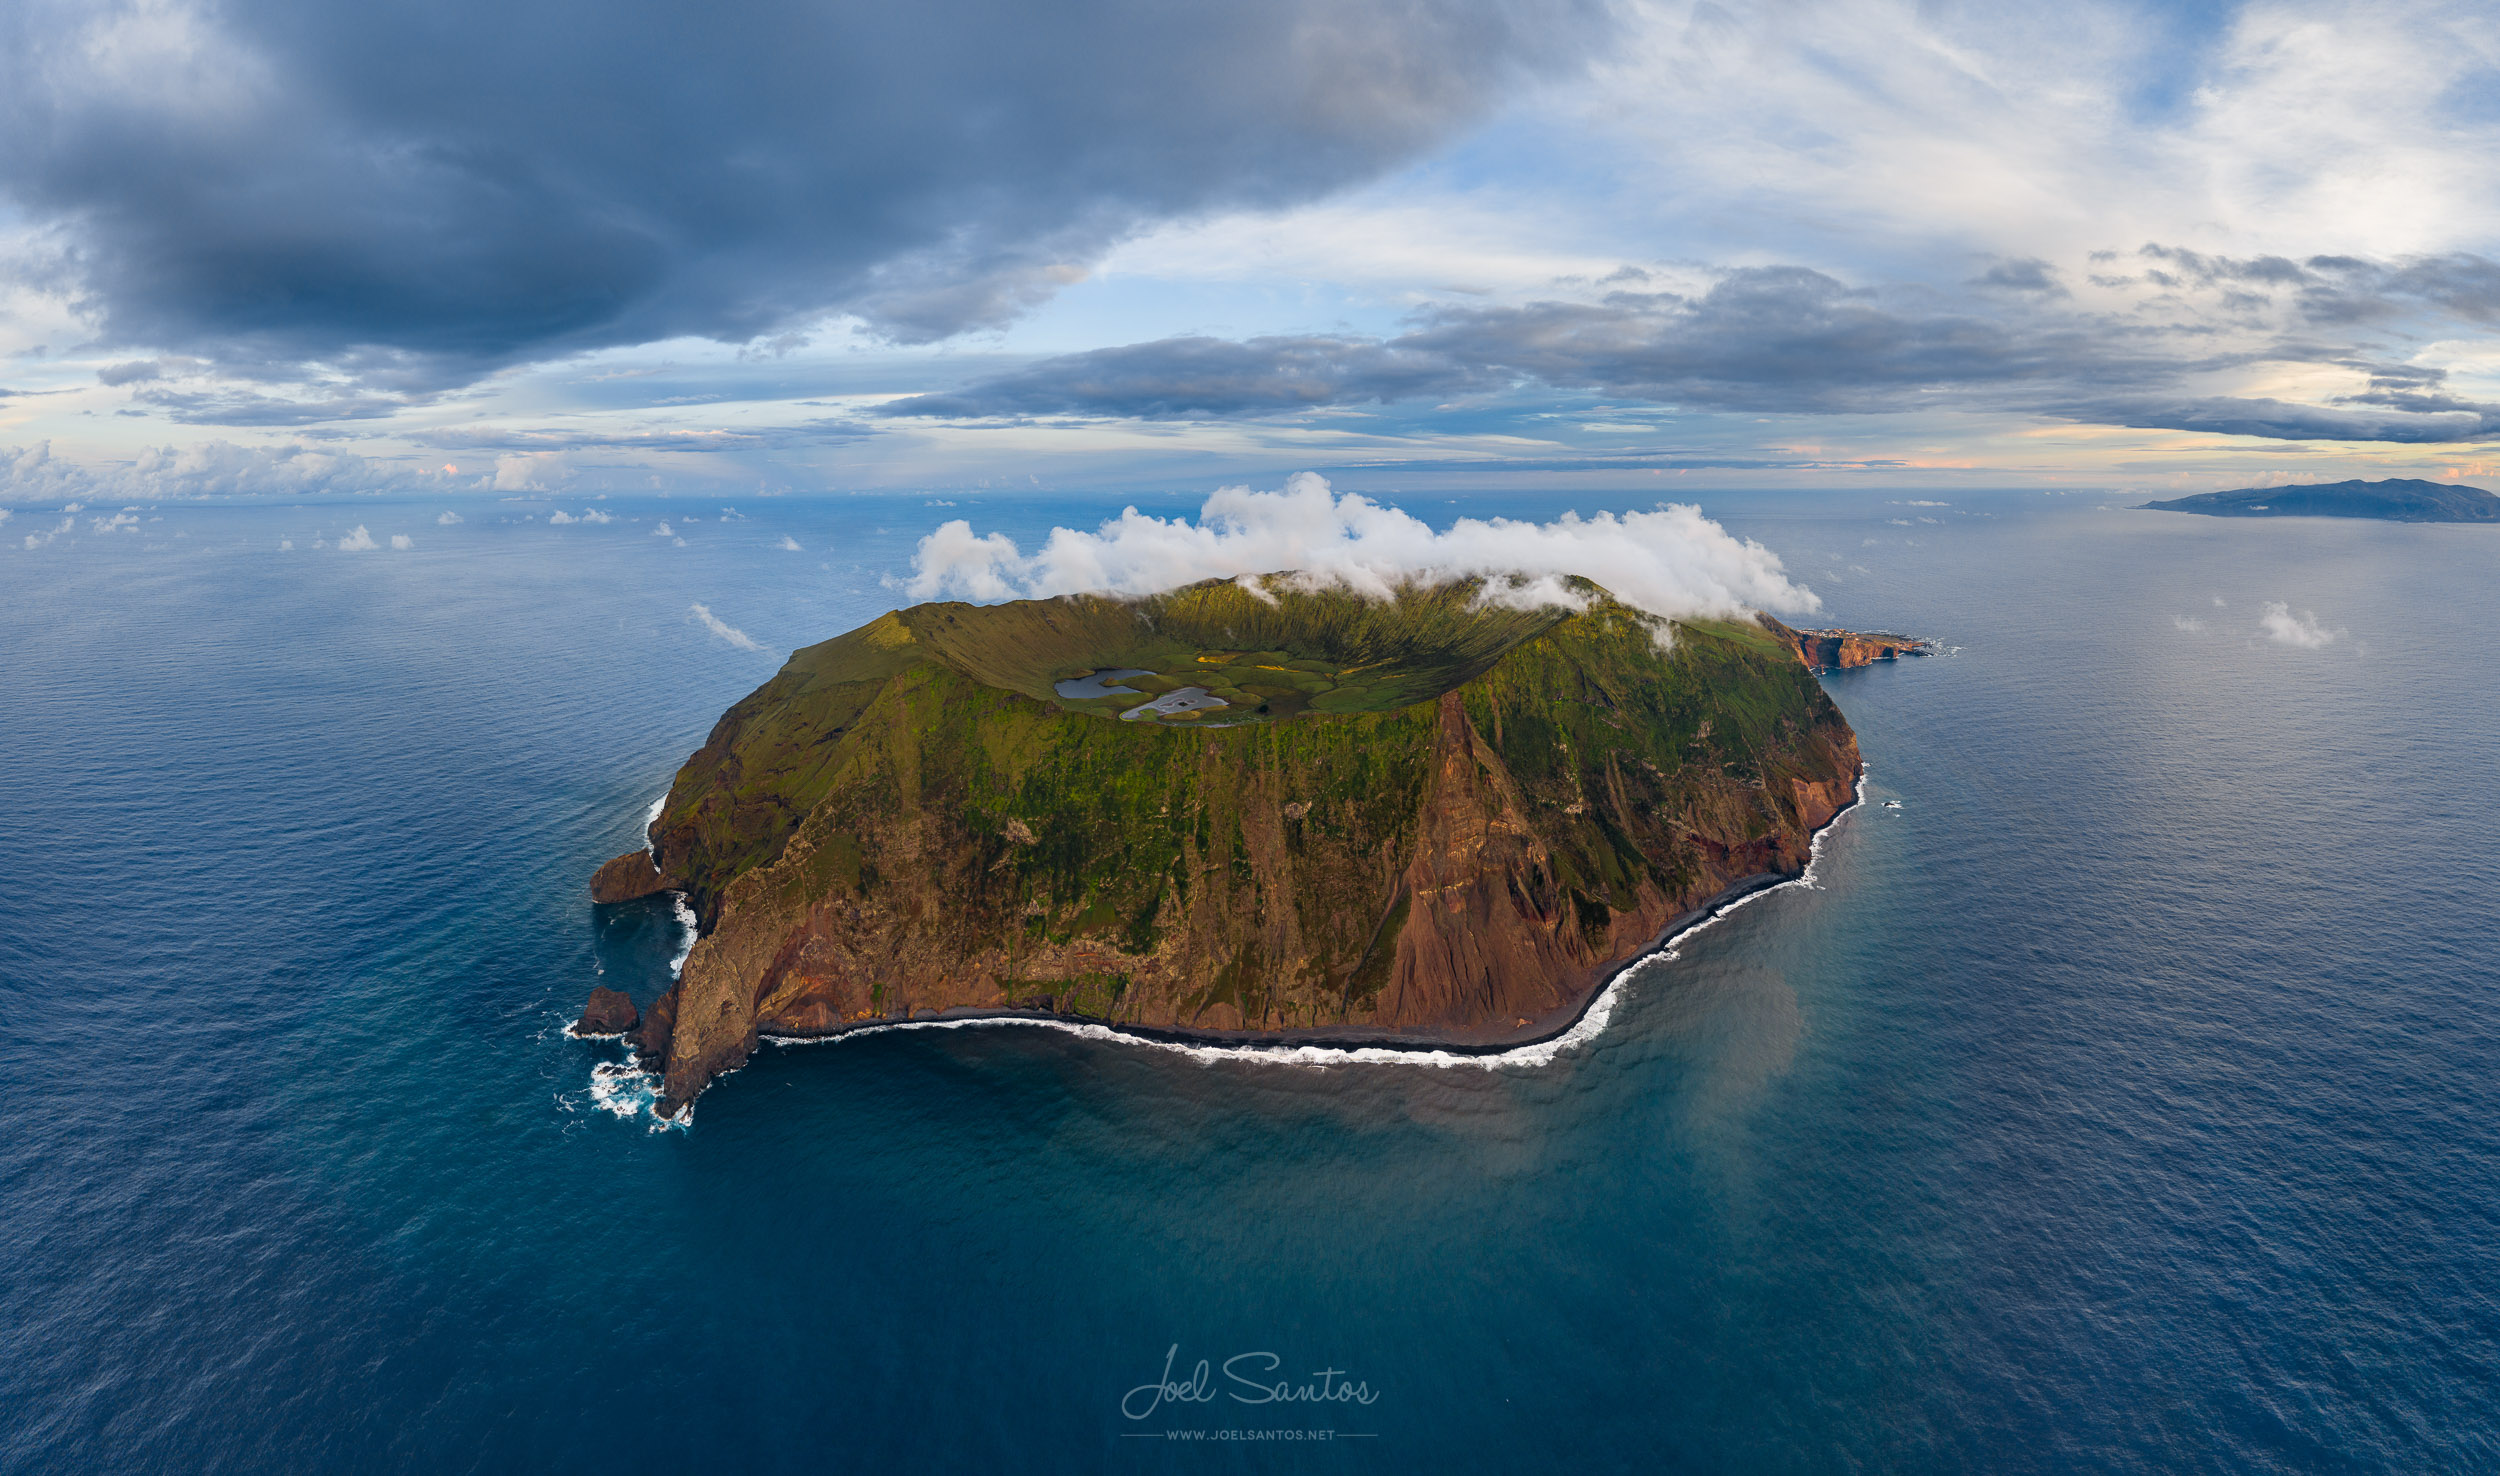 Corvo Island crater aerial view, Azores, Portugal